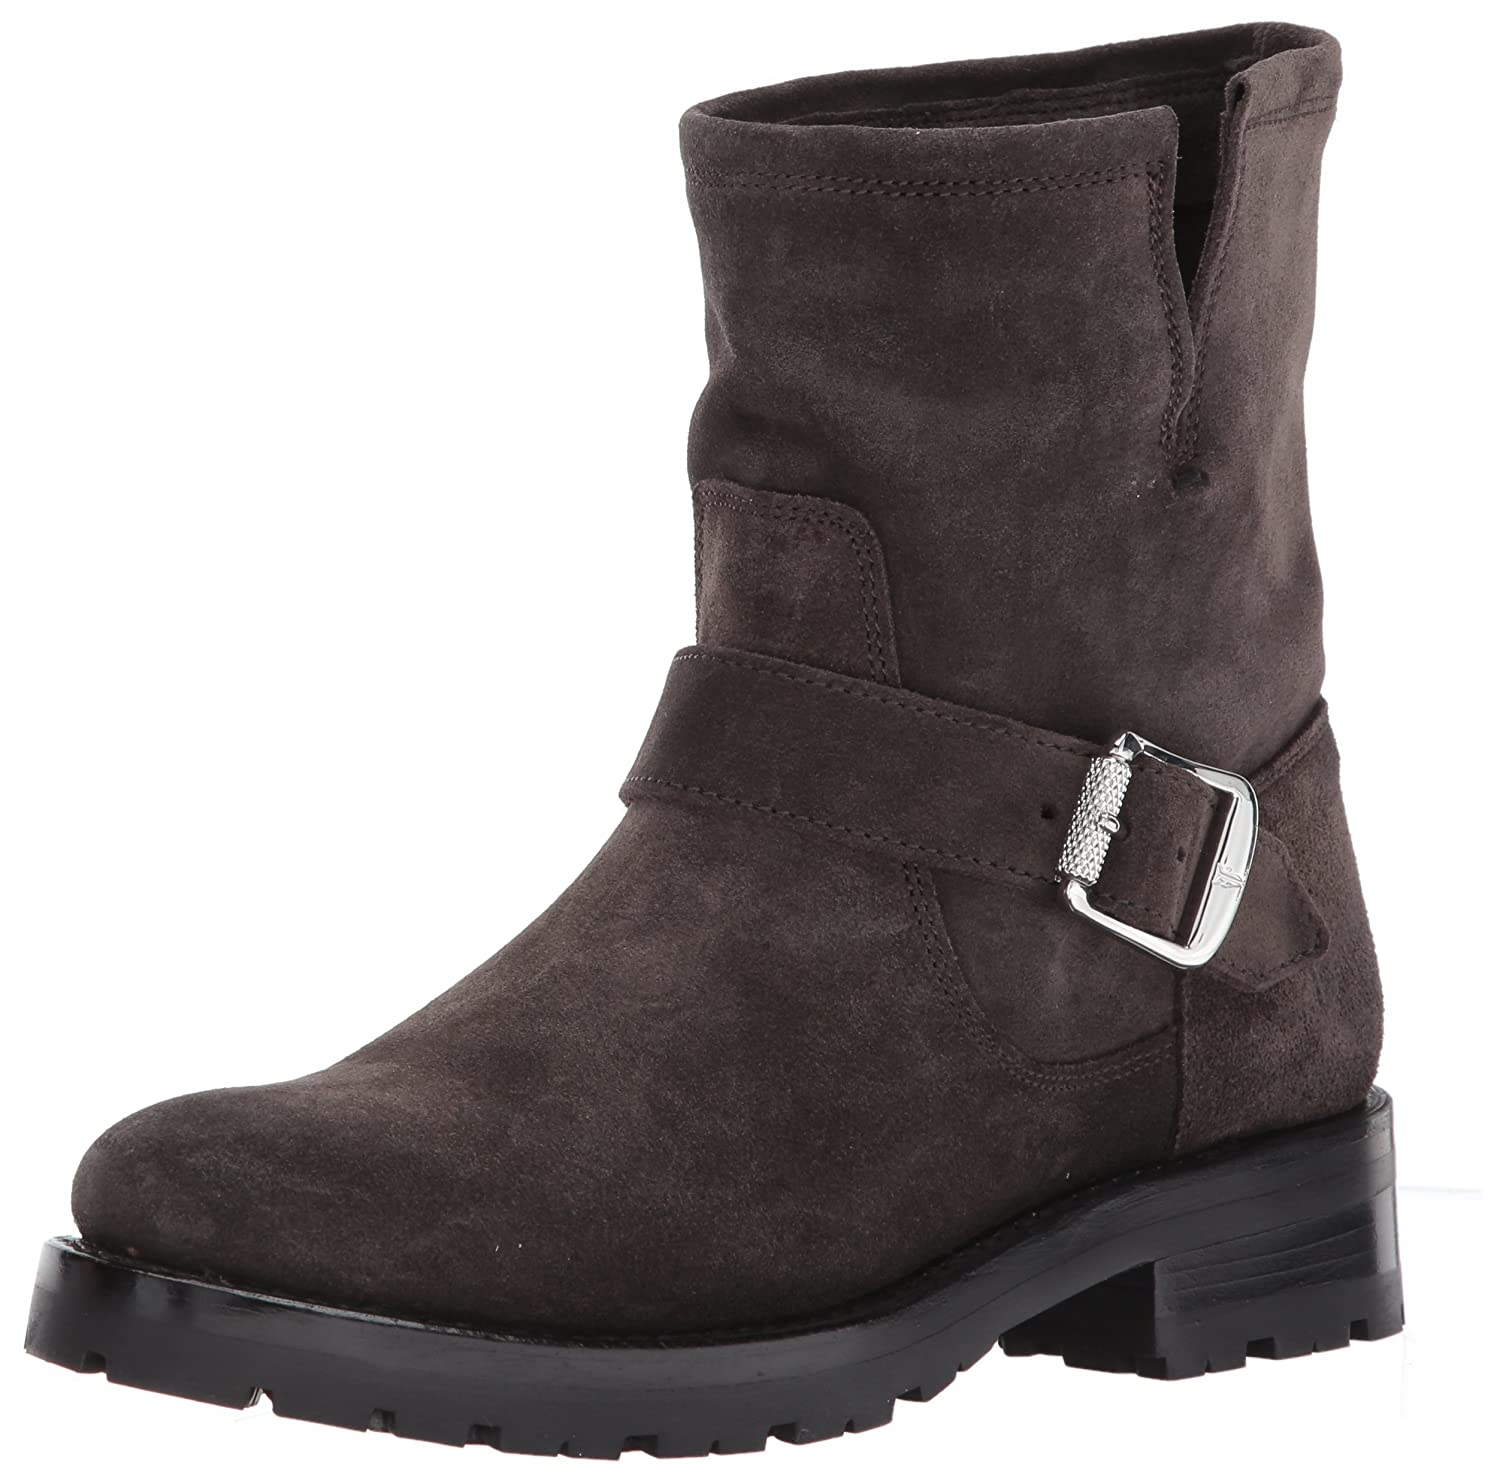 [FRYE] Womens Natalie Short Lug Engineer Suede Closed Toe Ankle Fashion Boots [並行輸入品]